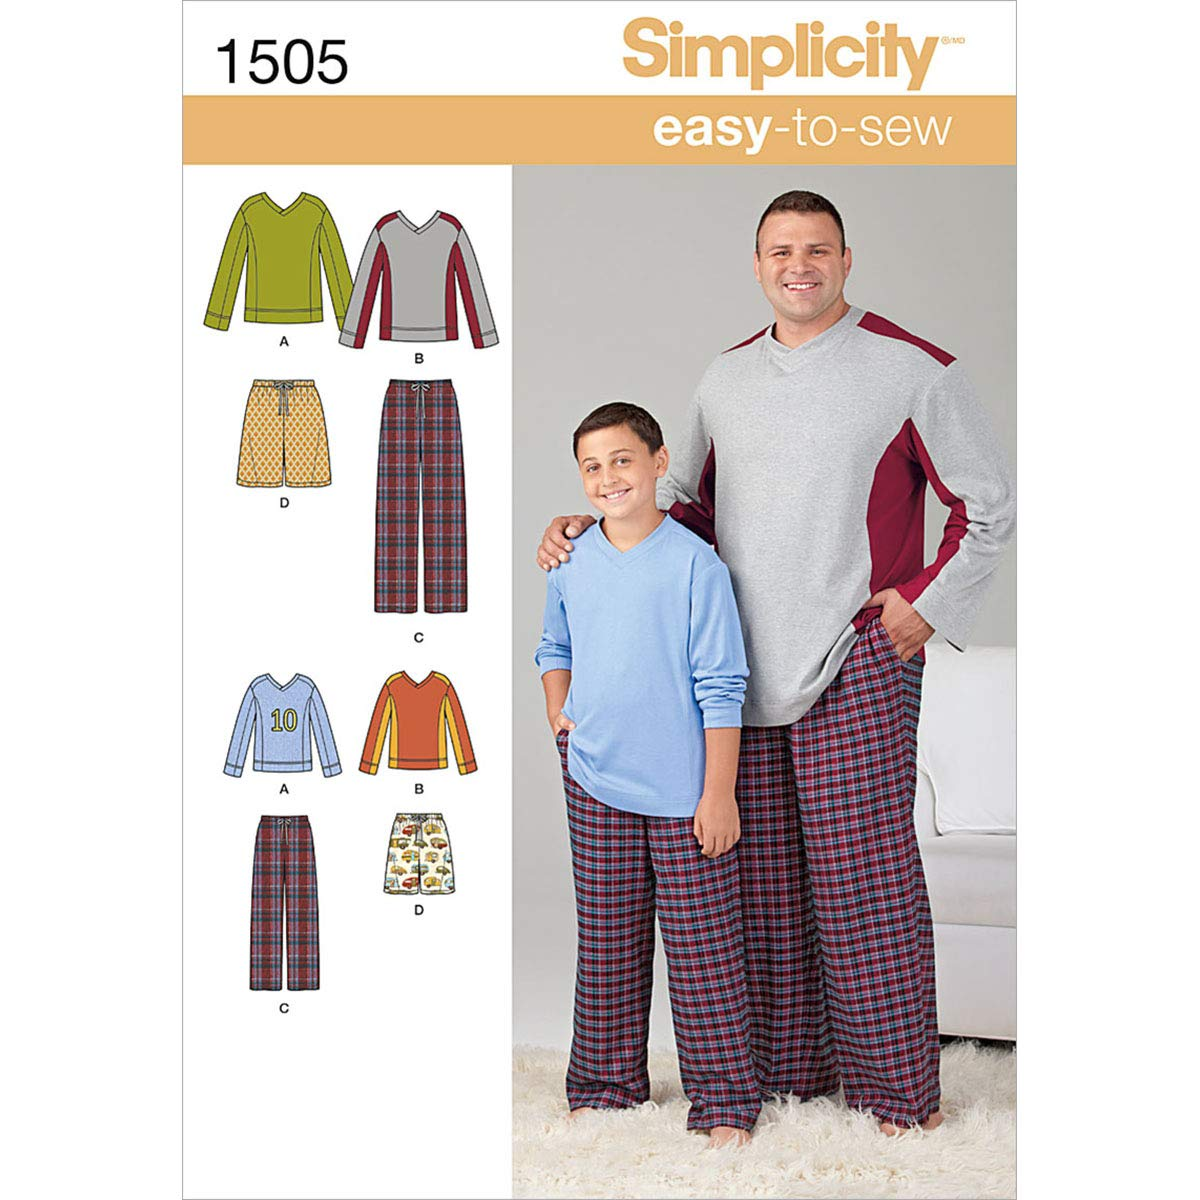 Simplicity Creative Patterns 1505 Husky Boys' and Big and Tall Men's Tops and Pants, A (Small-Large/1X-Large-5X-Large)